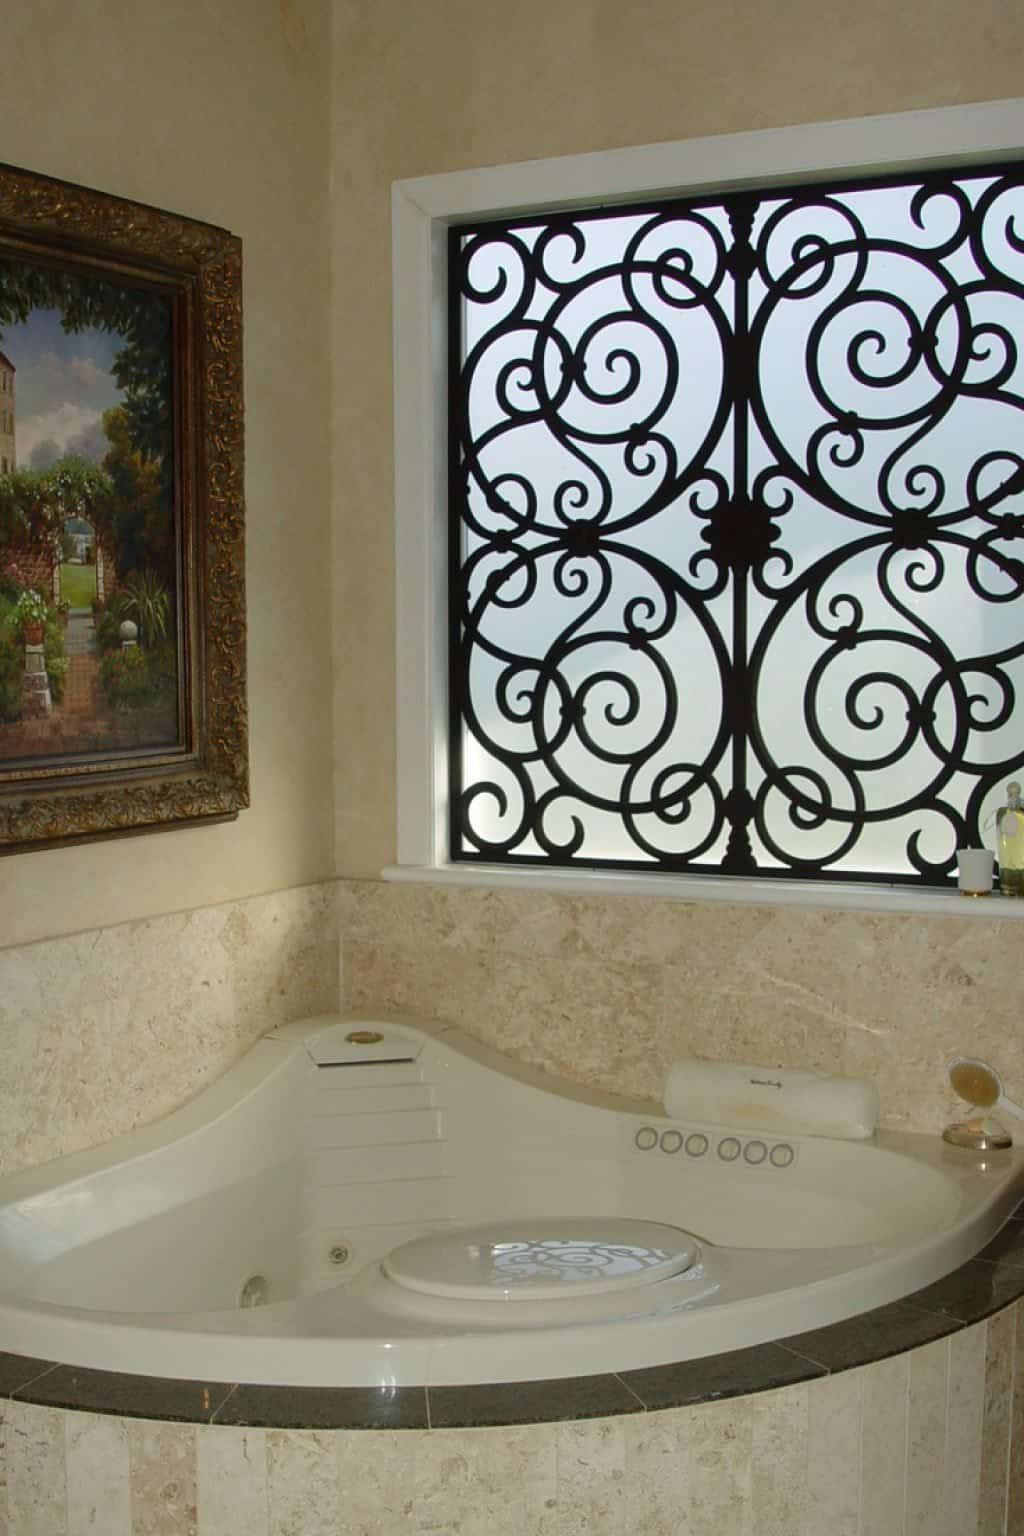 Decorative And Sturdy Wrought Iron Home Decor This but white and with stacked rock where the tile i